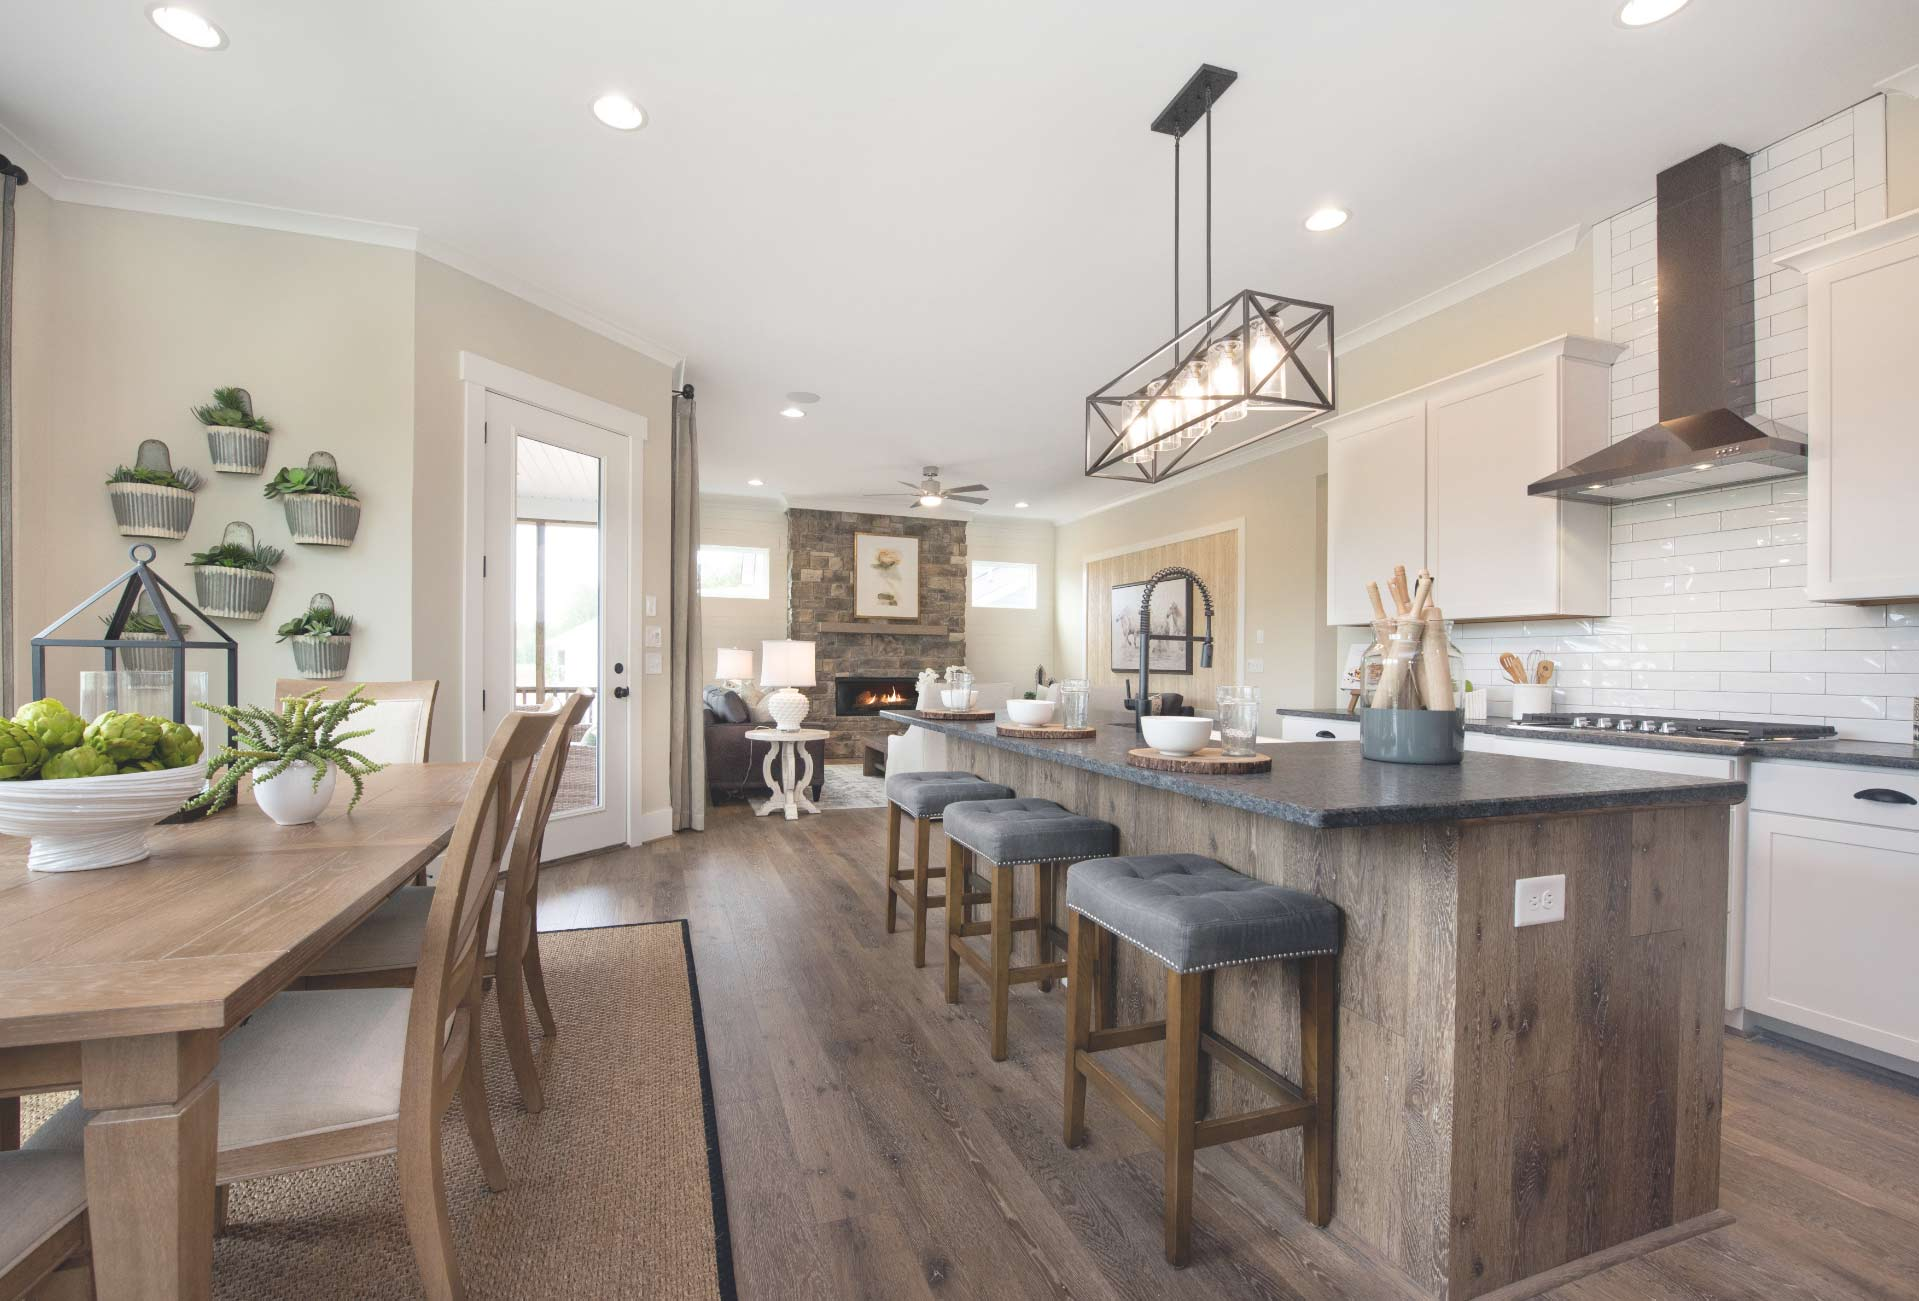 New construction homes in Wake Forest   https://www.holdingvillage.com/